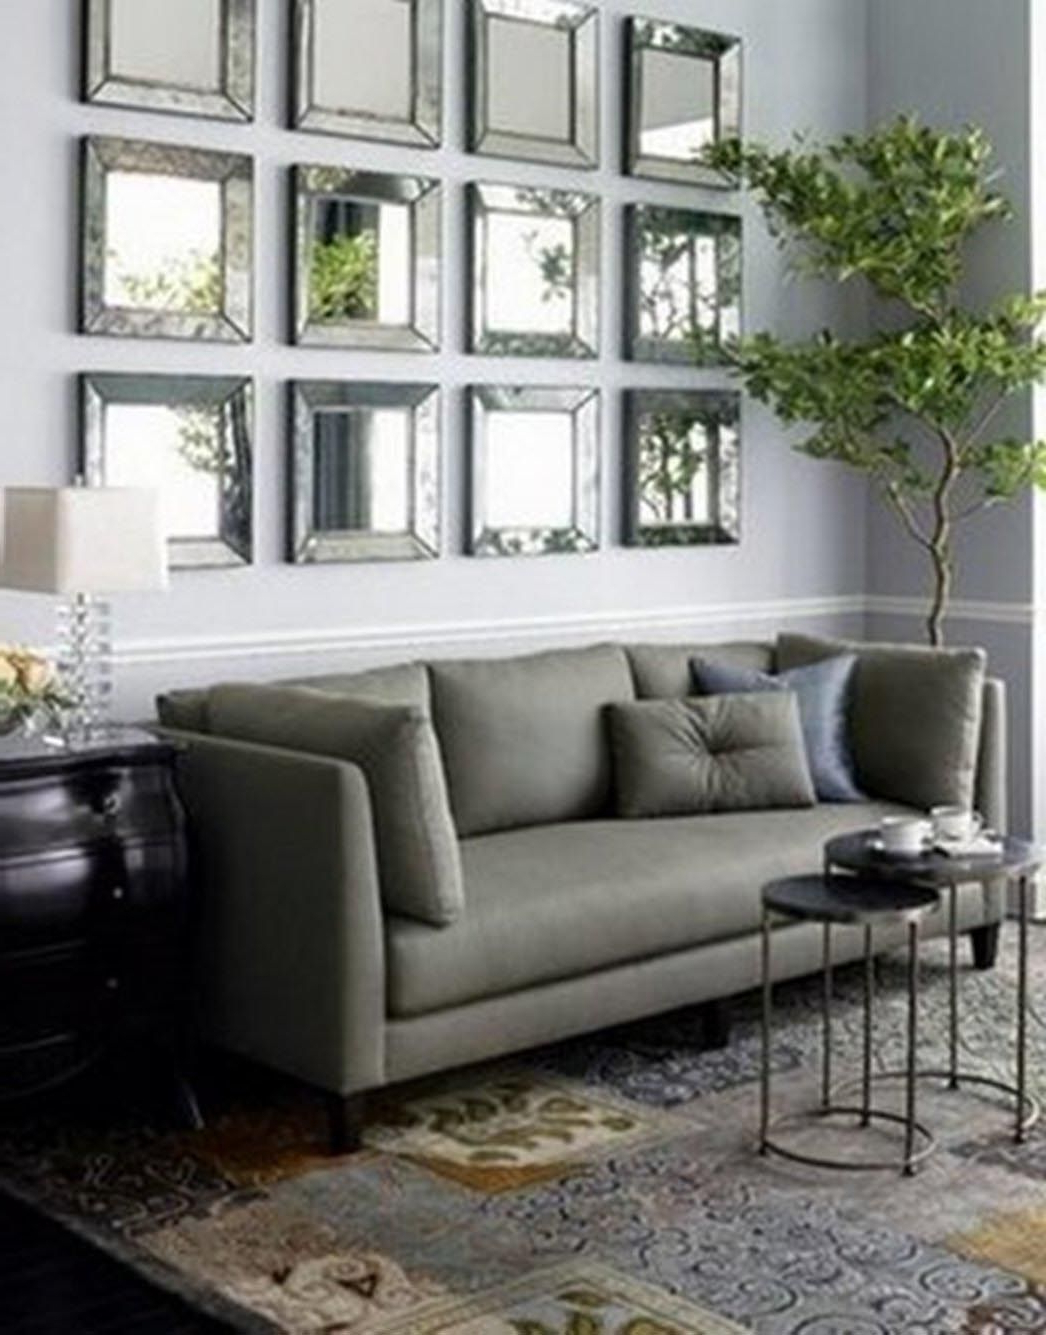 Extra Large Room Wall Mirrors Unusual Shape Living Oversized For Pertaining To Famous Big Size Wall Mirrors (View 17 of 20)